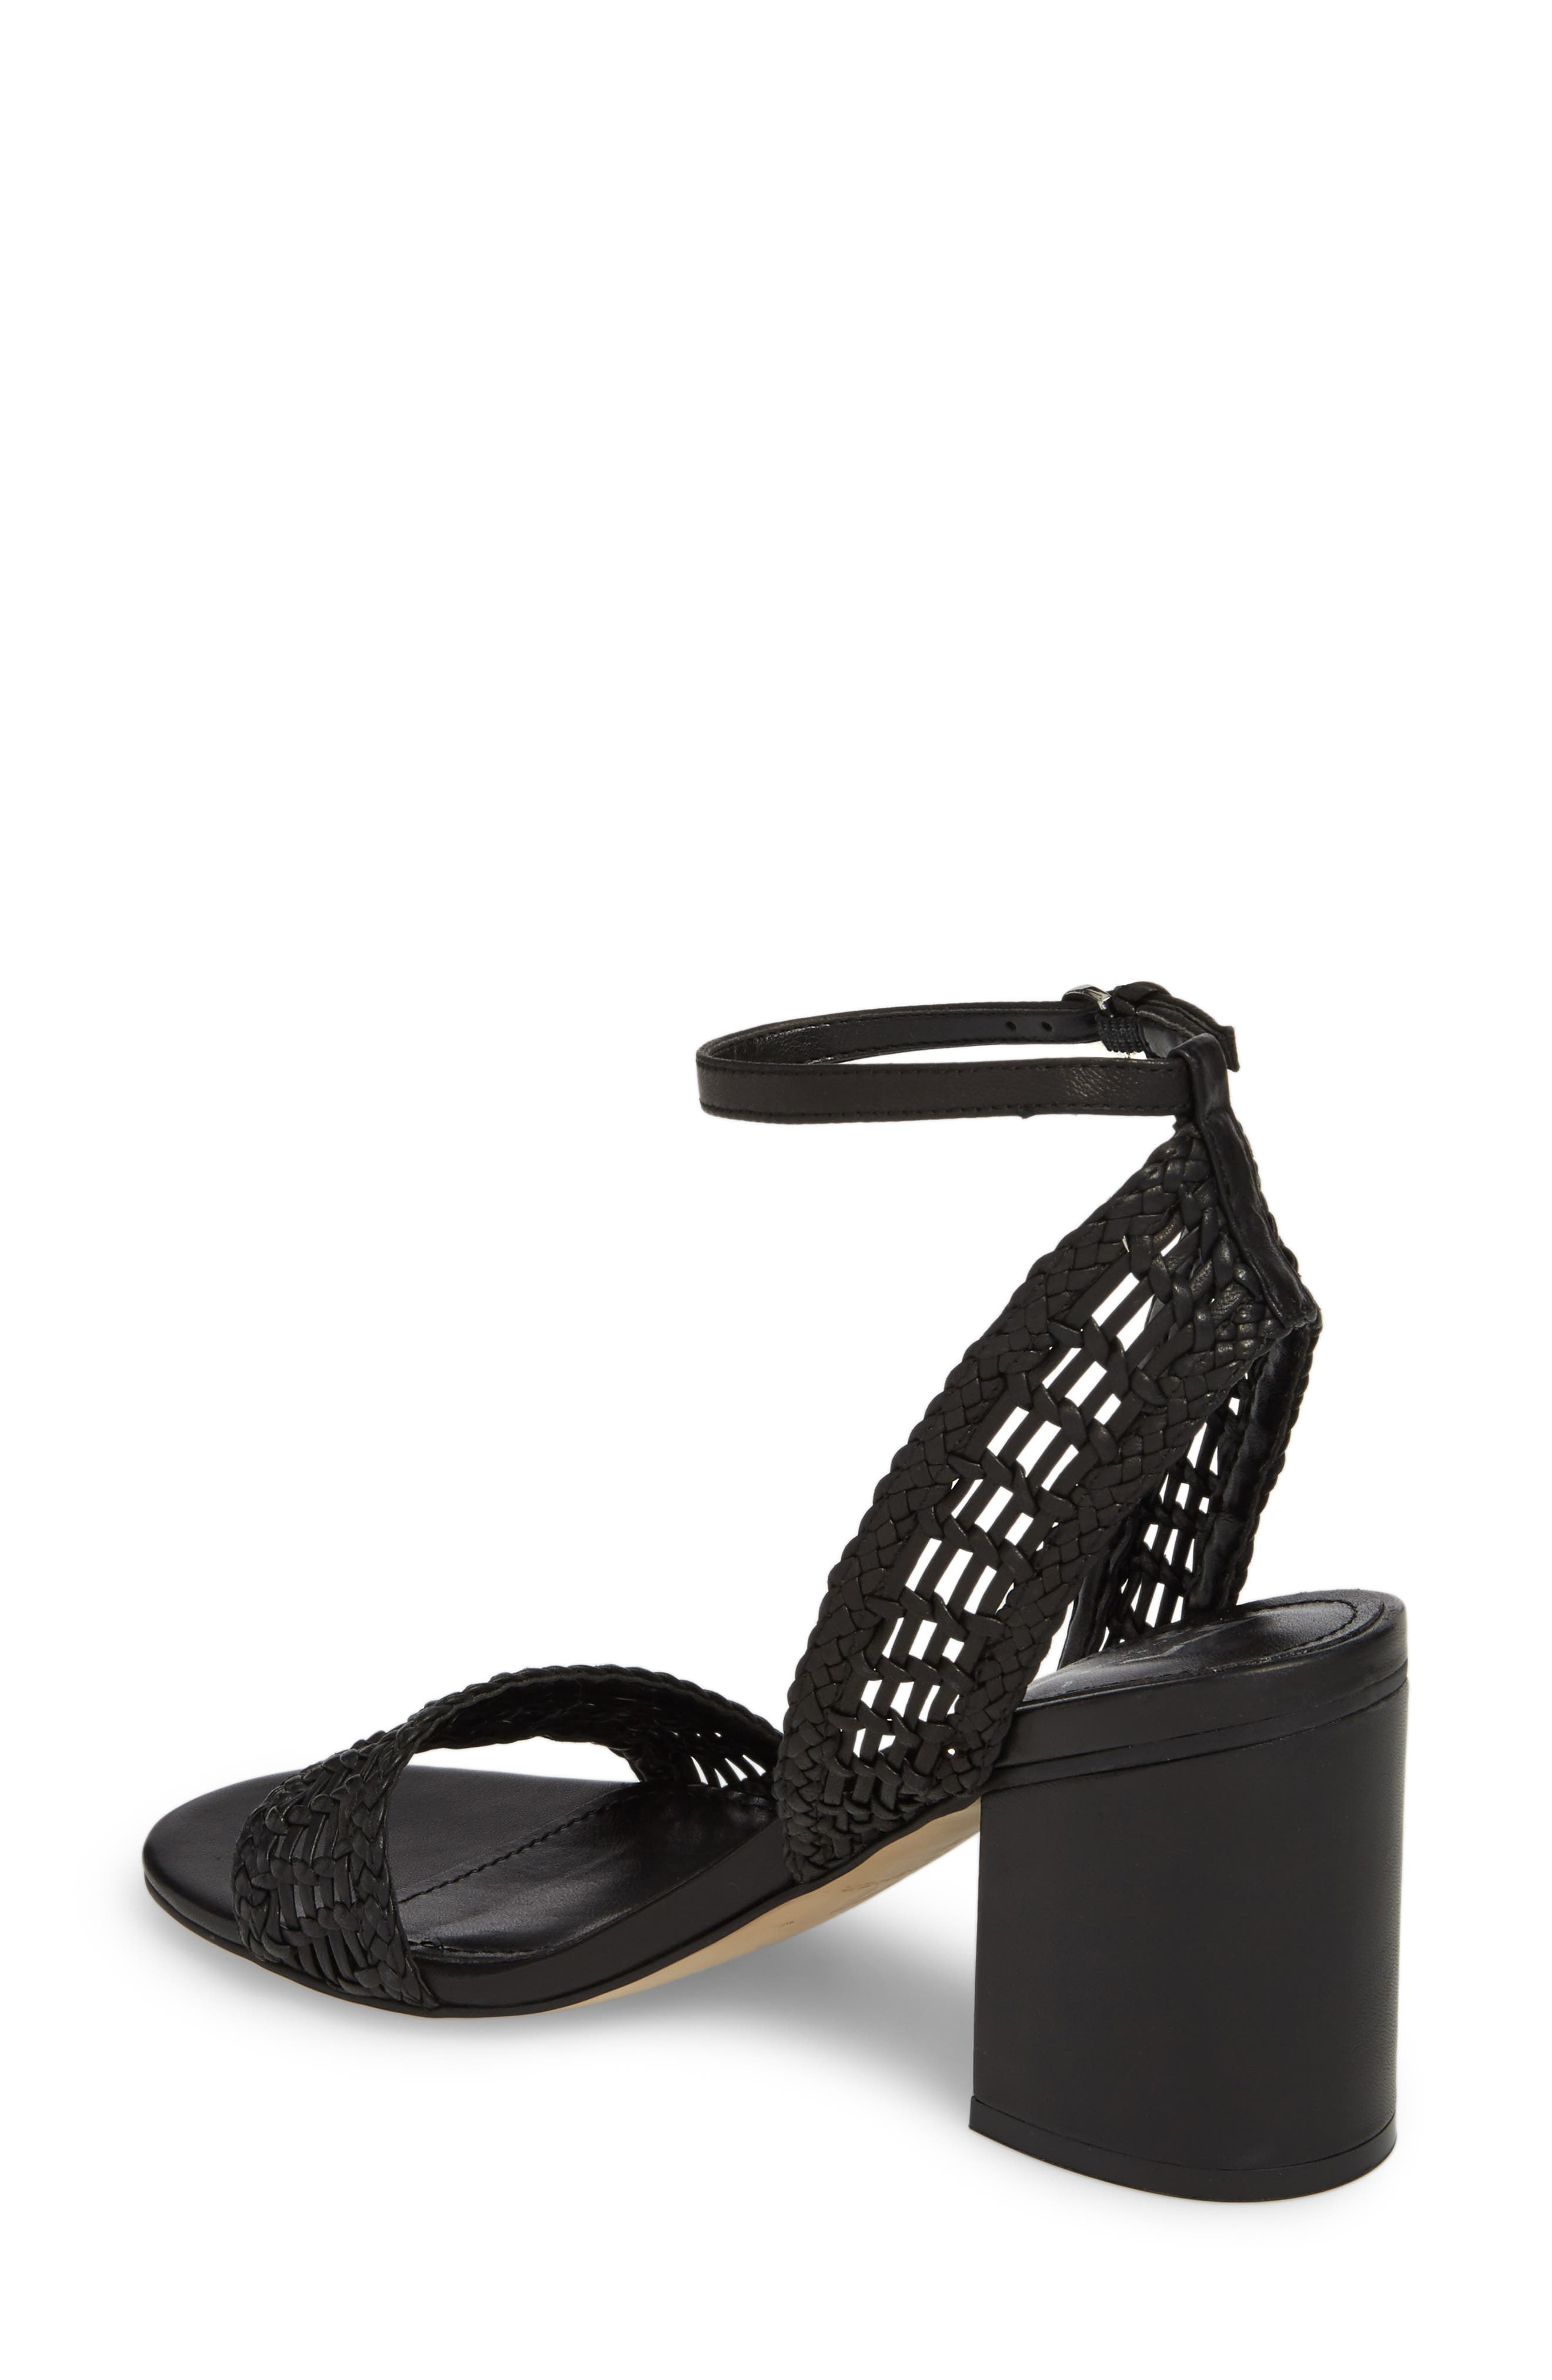 Amere Ankle Strap Sandal,                             Alternate thumbnail 2, color,                             001